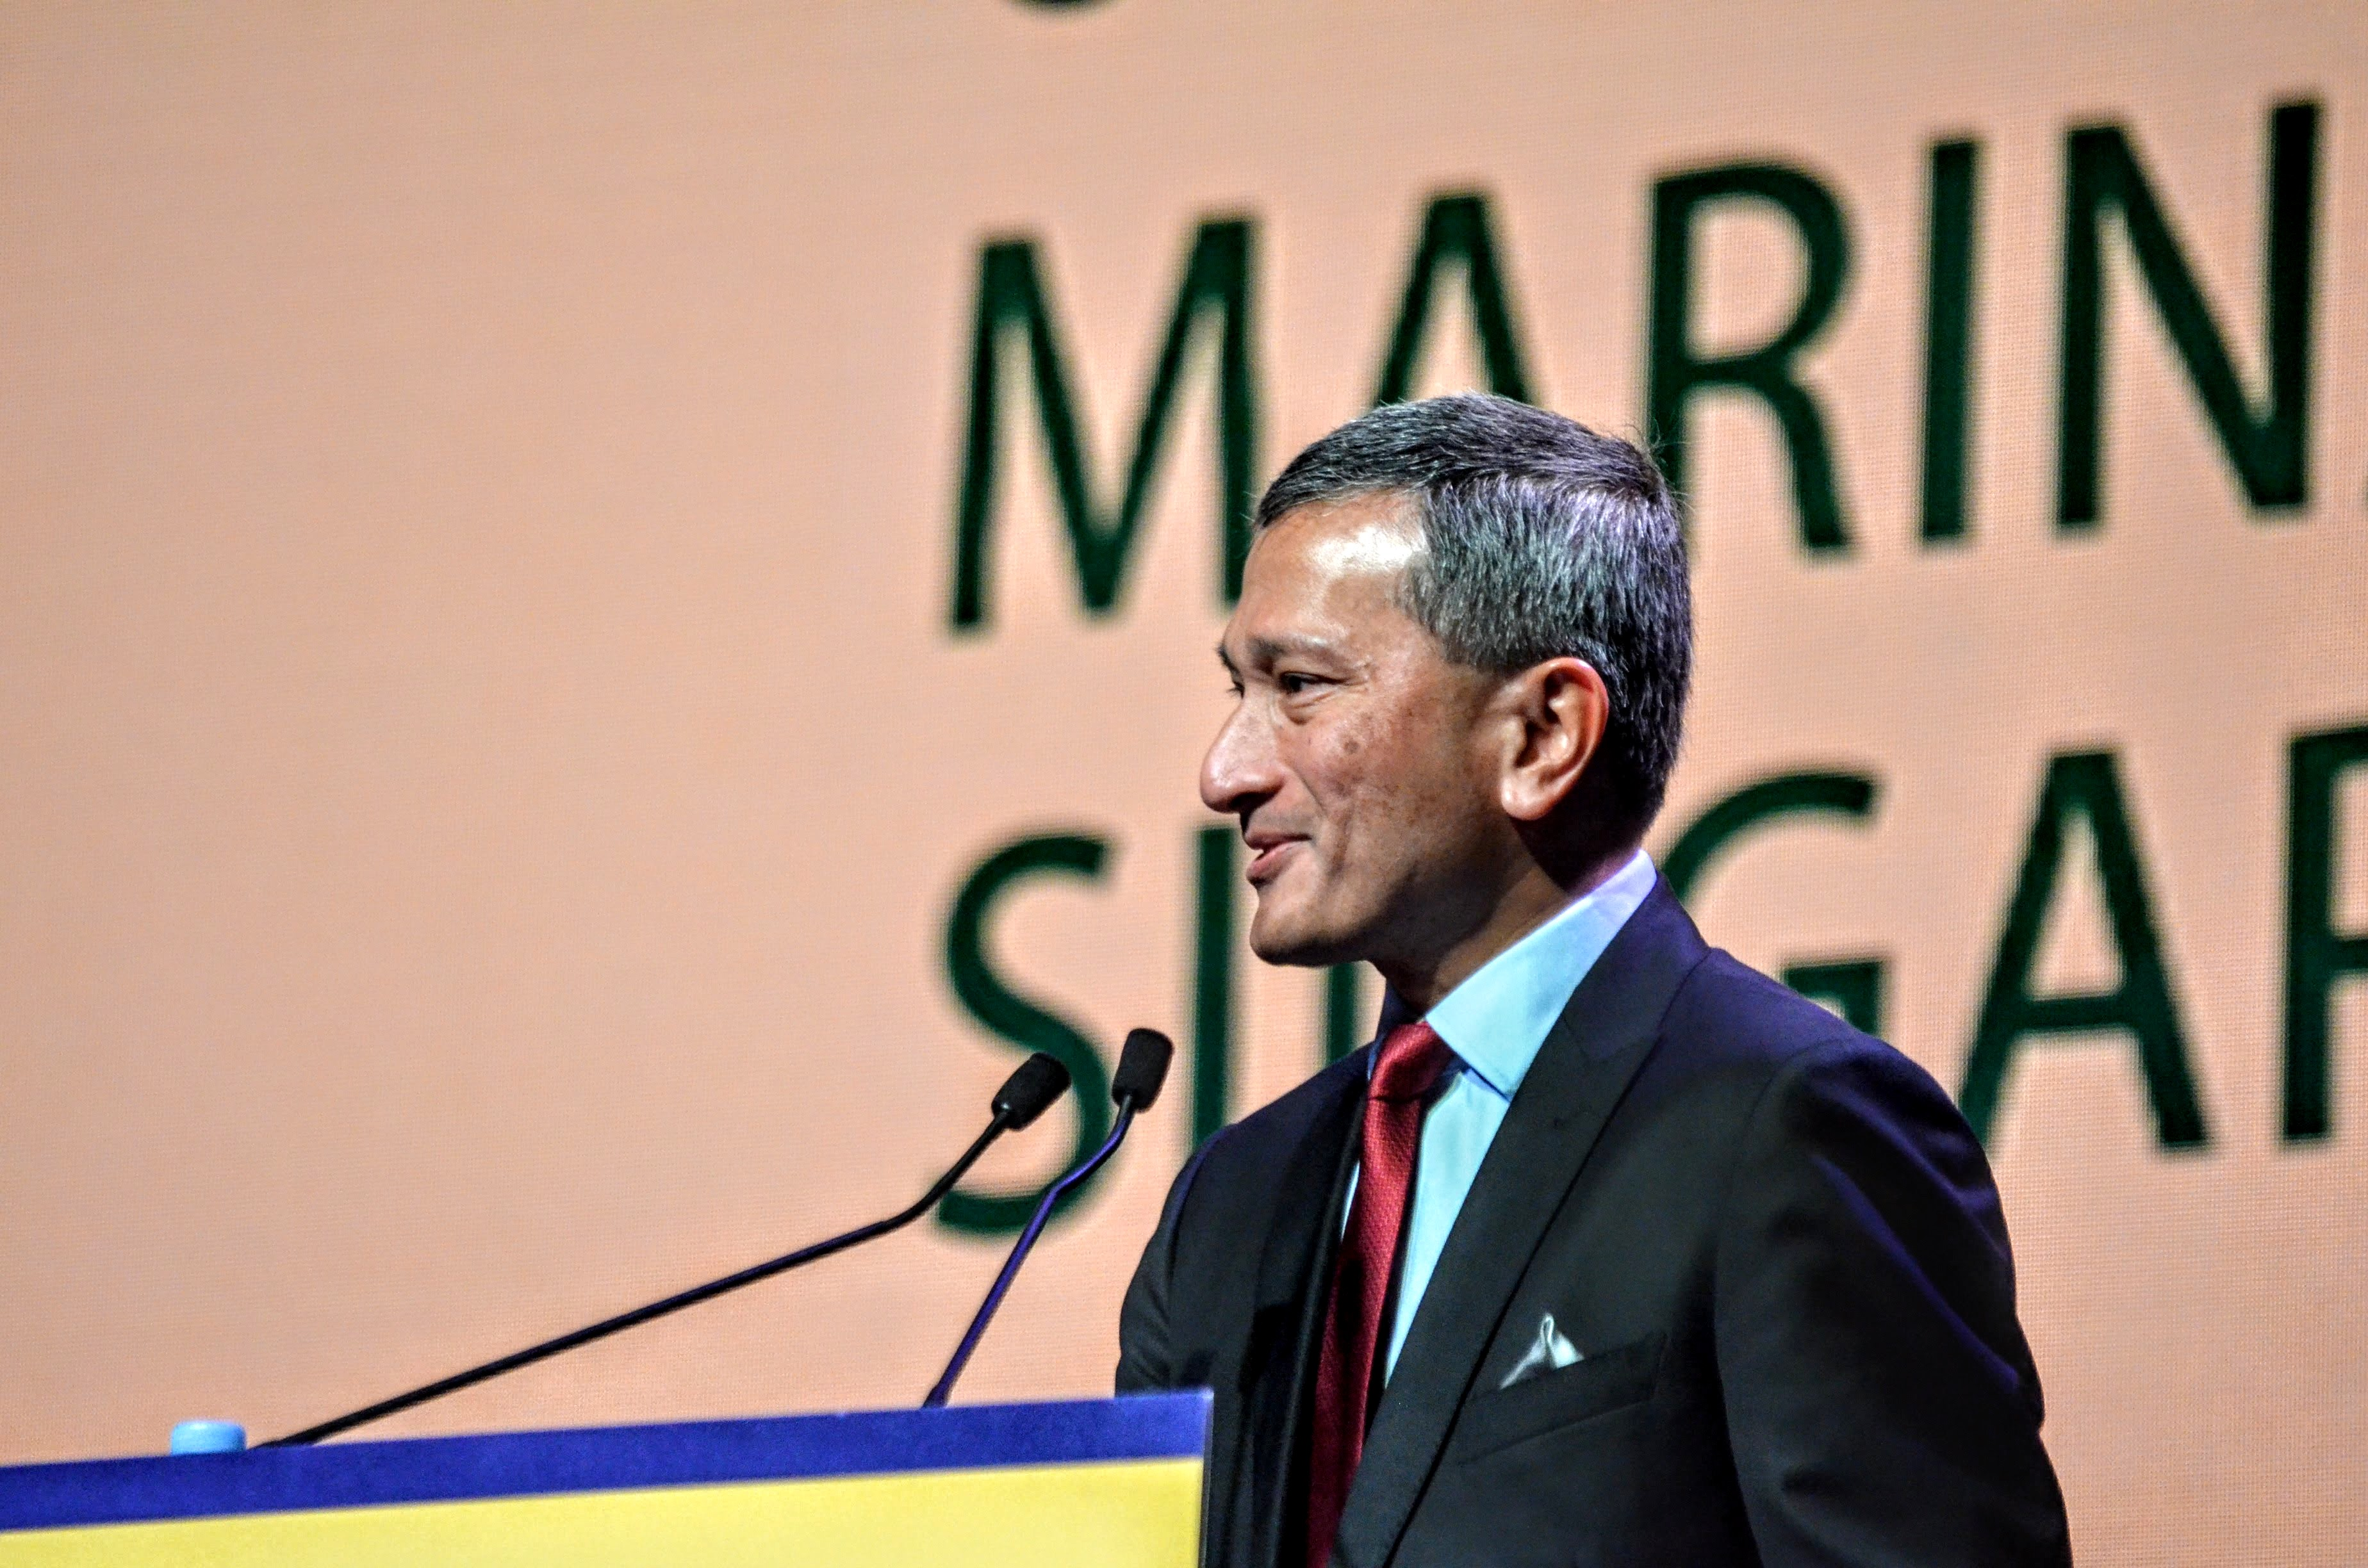 Minister for Foreign Affairs of Singapore Dr Vivian Balakrishnan talked about for taking the step of economic integration of India and ASEAN.